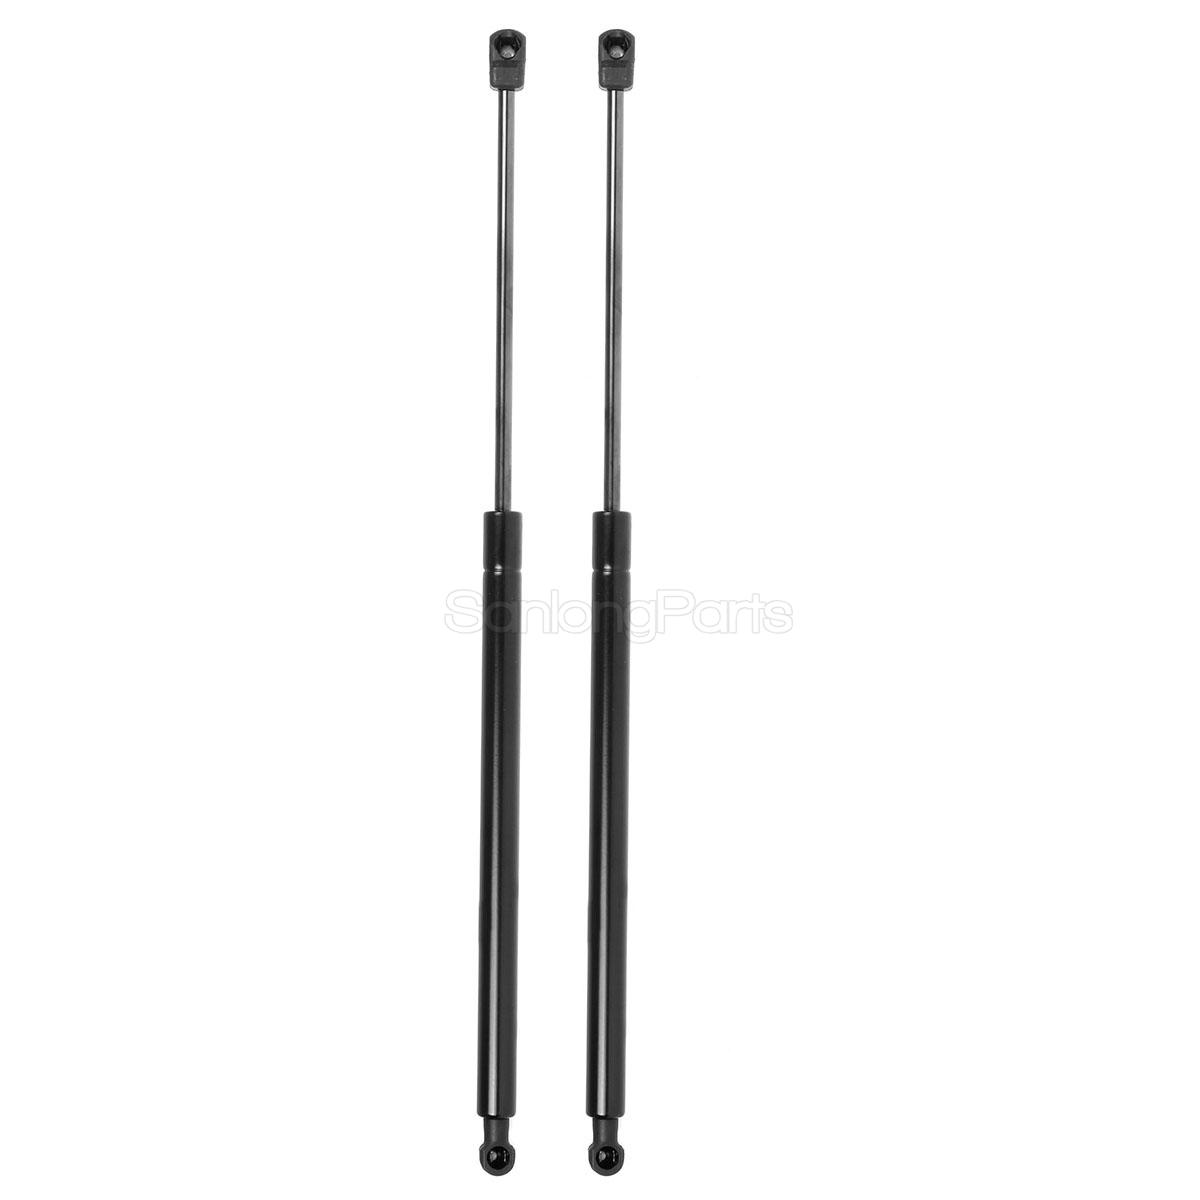 2pcs Front Hood Gas Charged Lift Support For Chevrolet